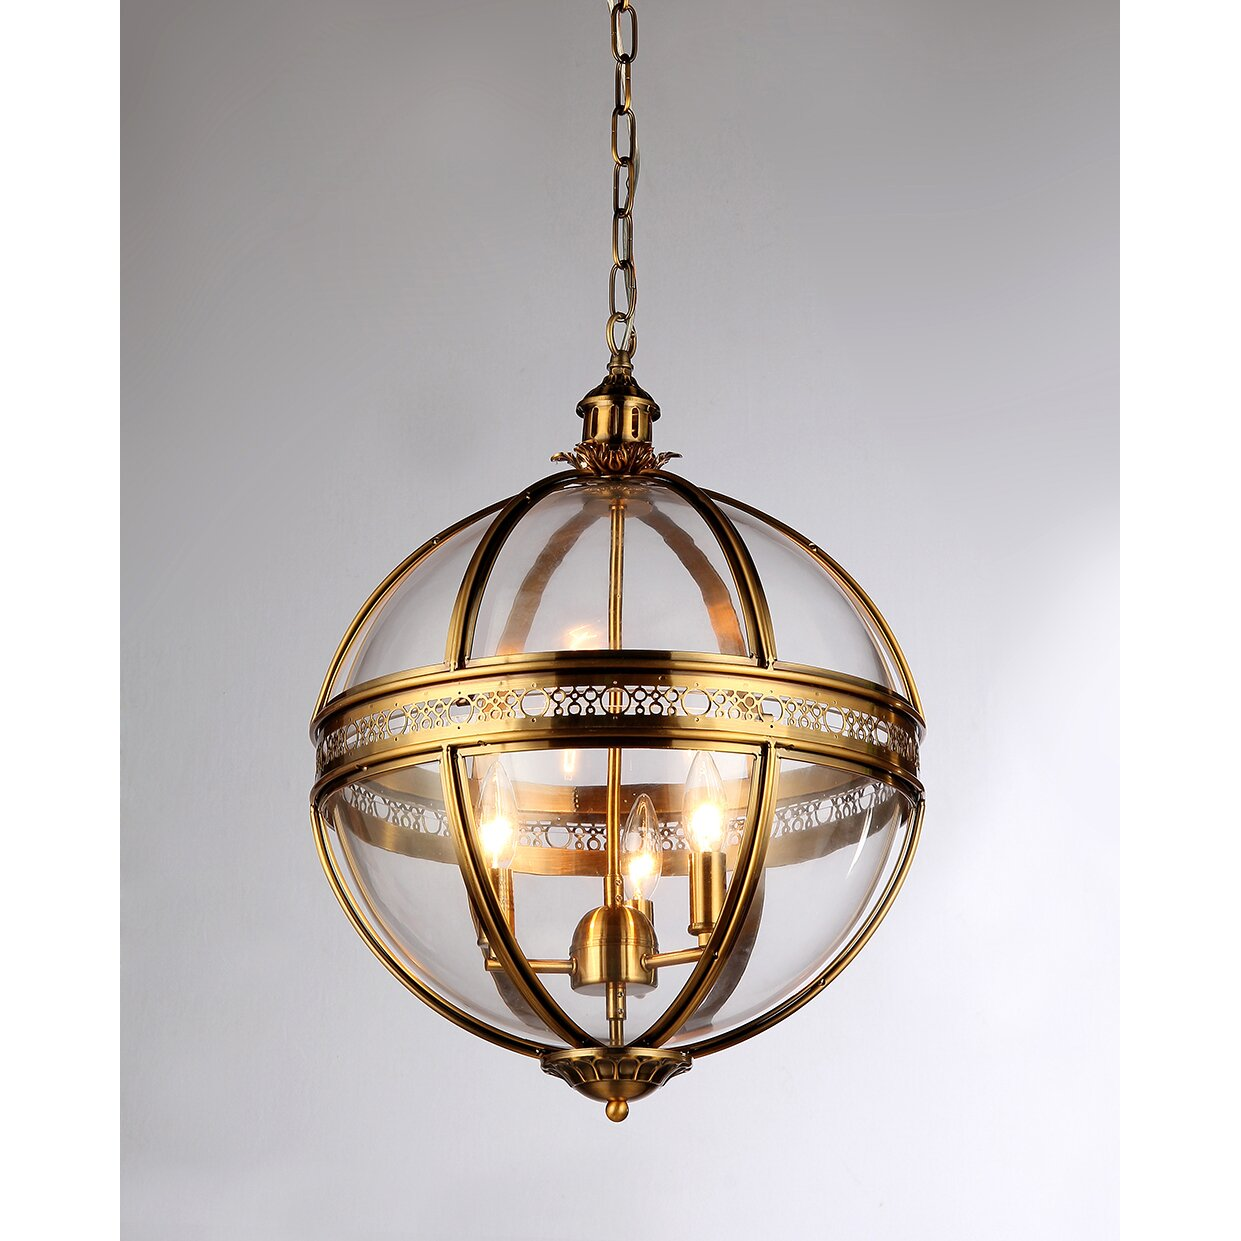 Warehouse Of Tiffany 3 Light Candle-Style Chandelier